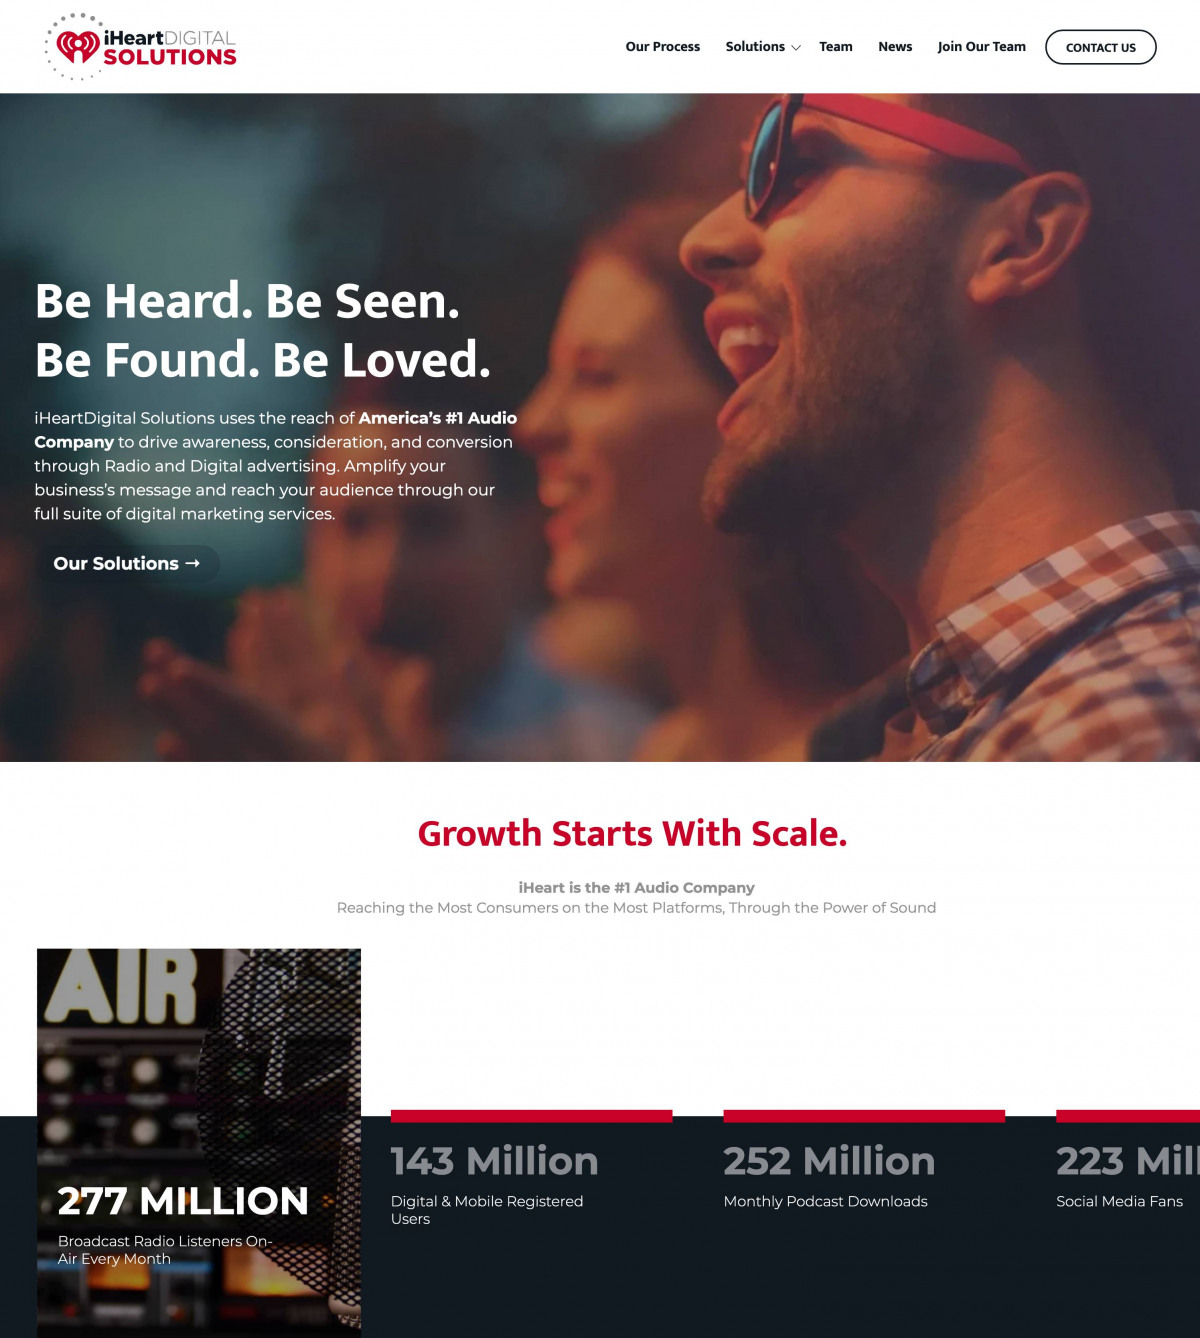 Image of website for iHeart Digital Solutions